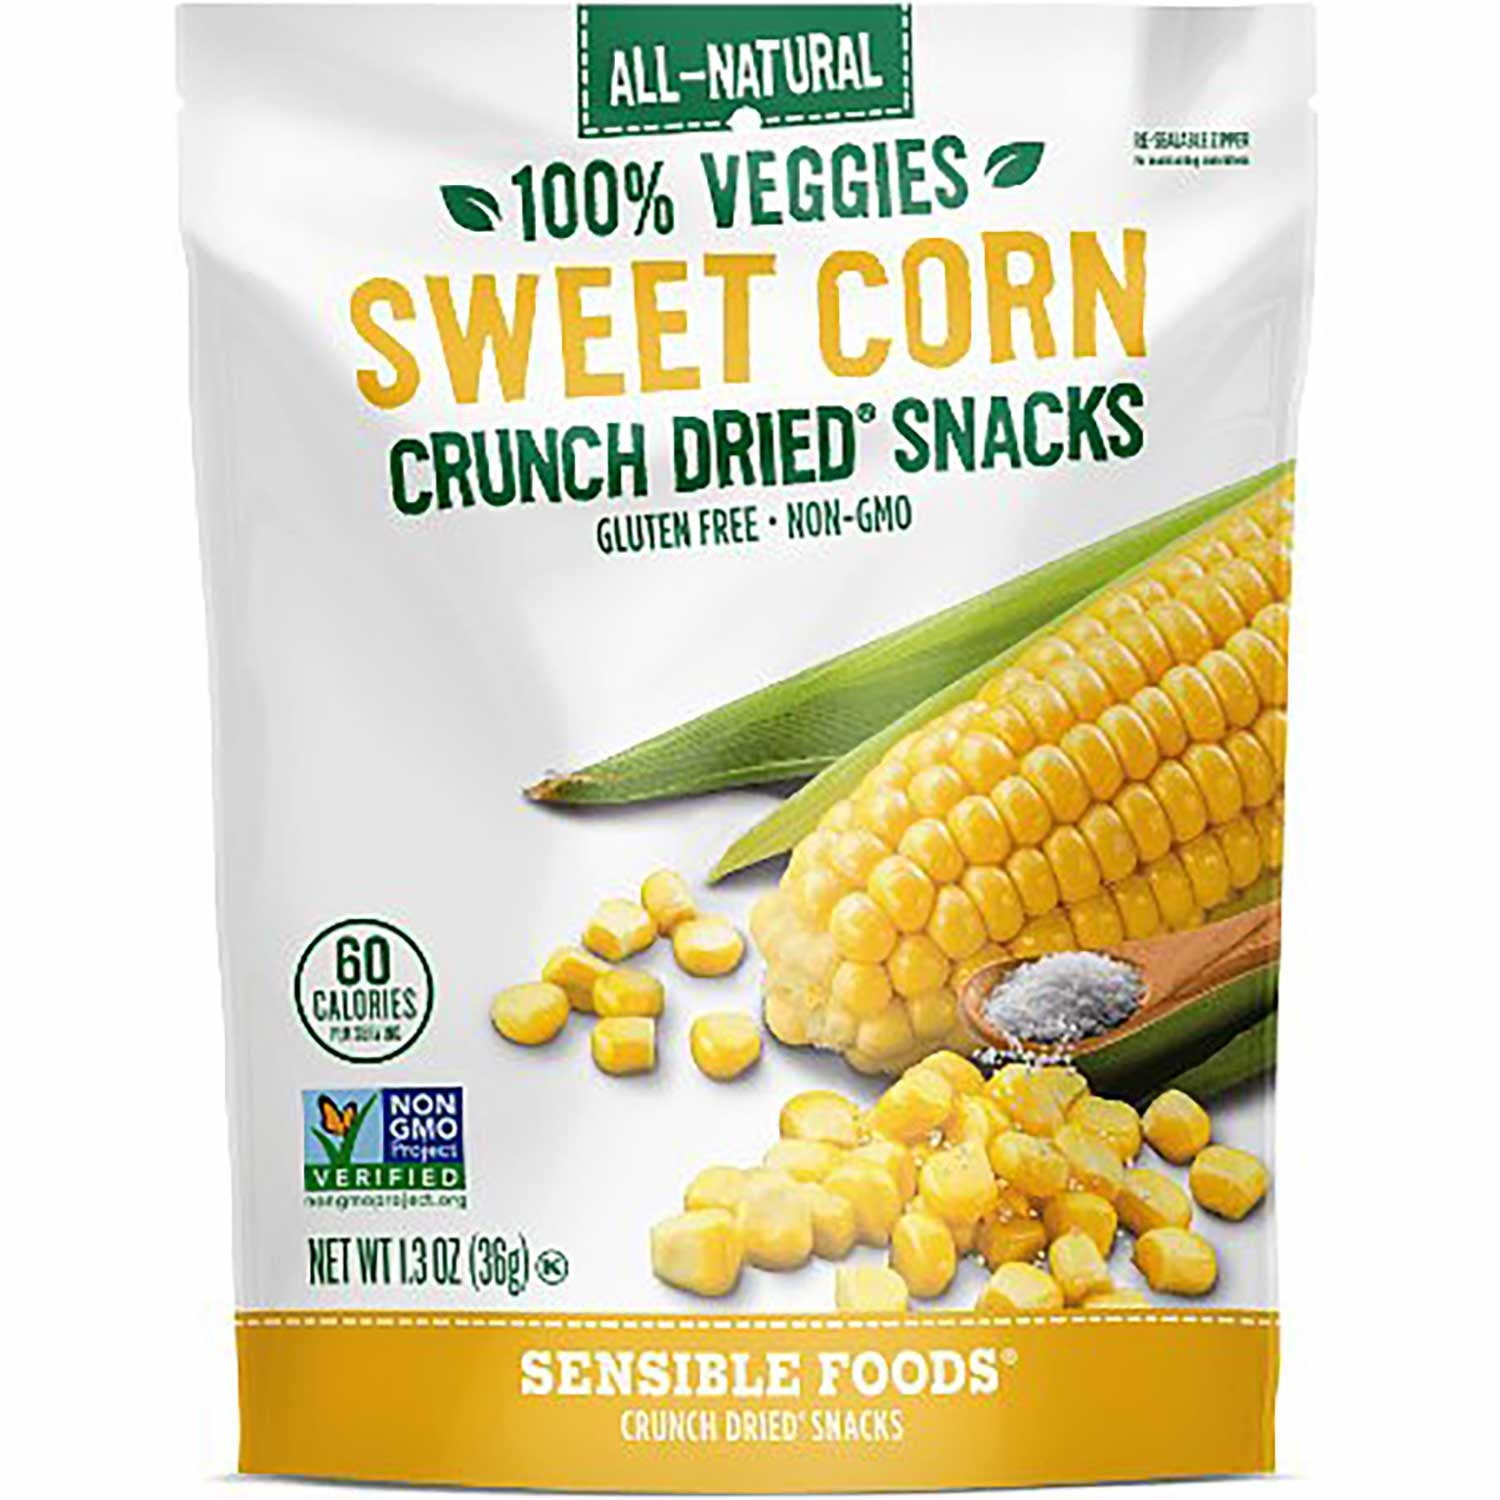 Sensible Foods All-Natural 100% Veggies Sweet Corn Crunch Dried Snack, 37g.-NaturesWisdom